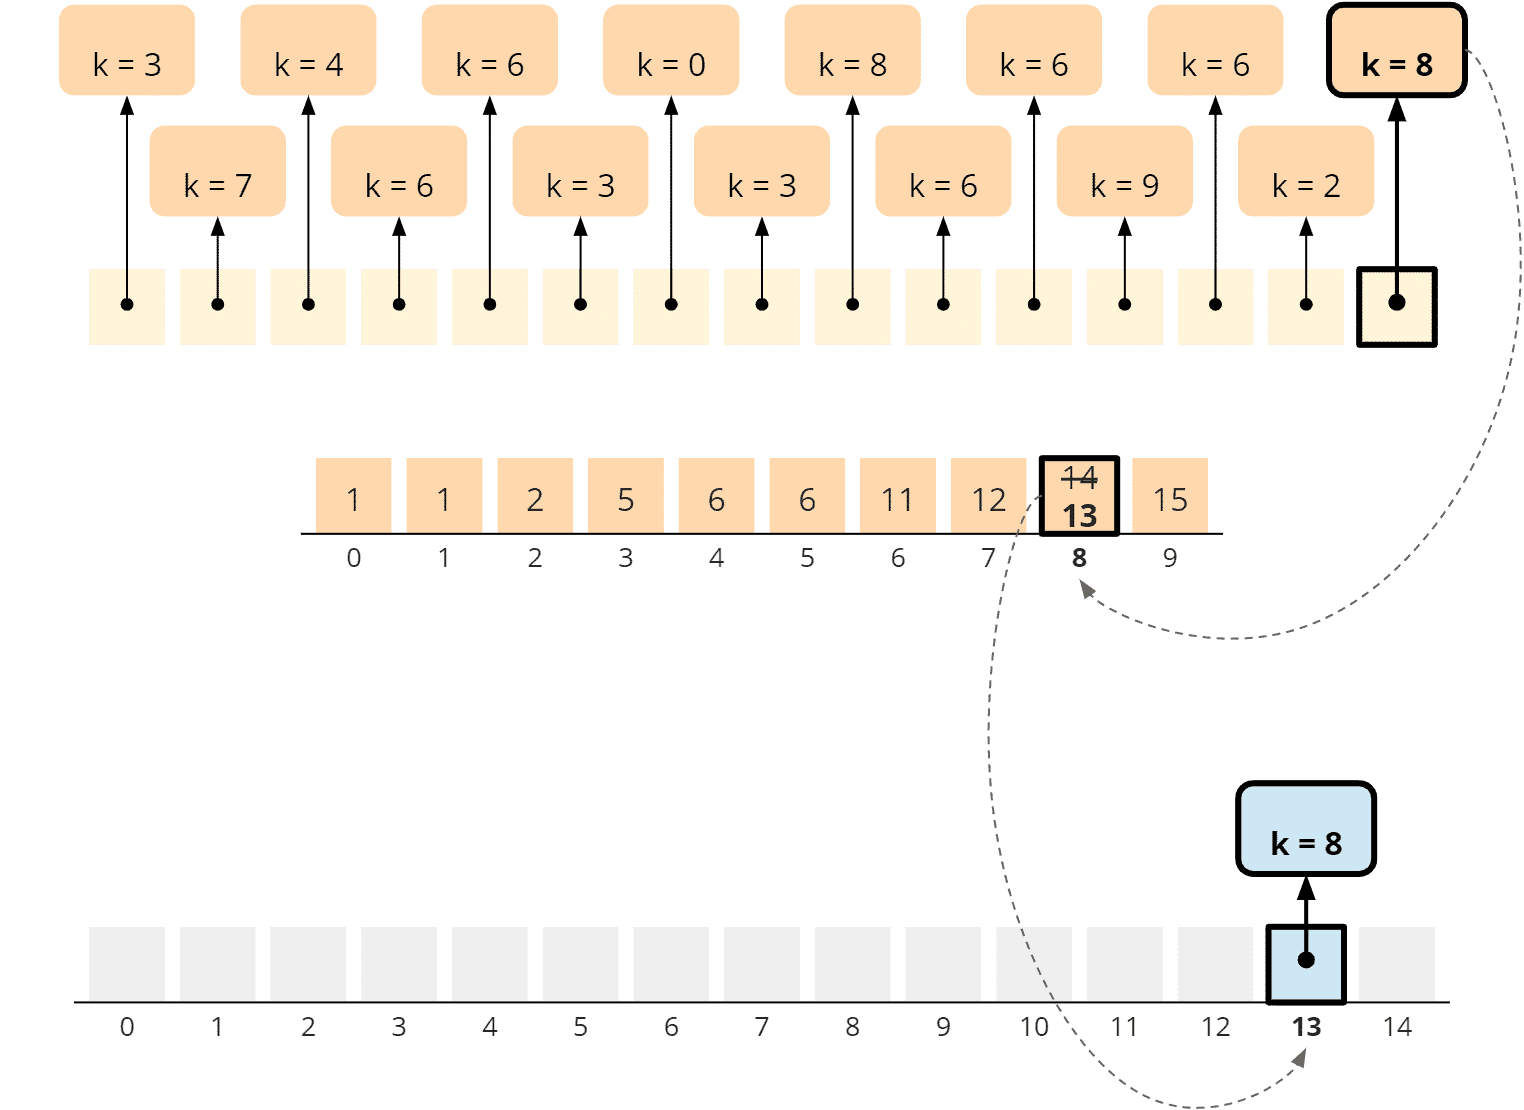 Counting Sort - general algorithm - phase 3 - step 1